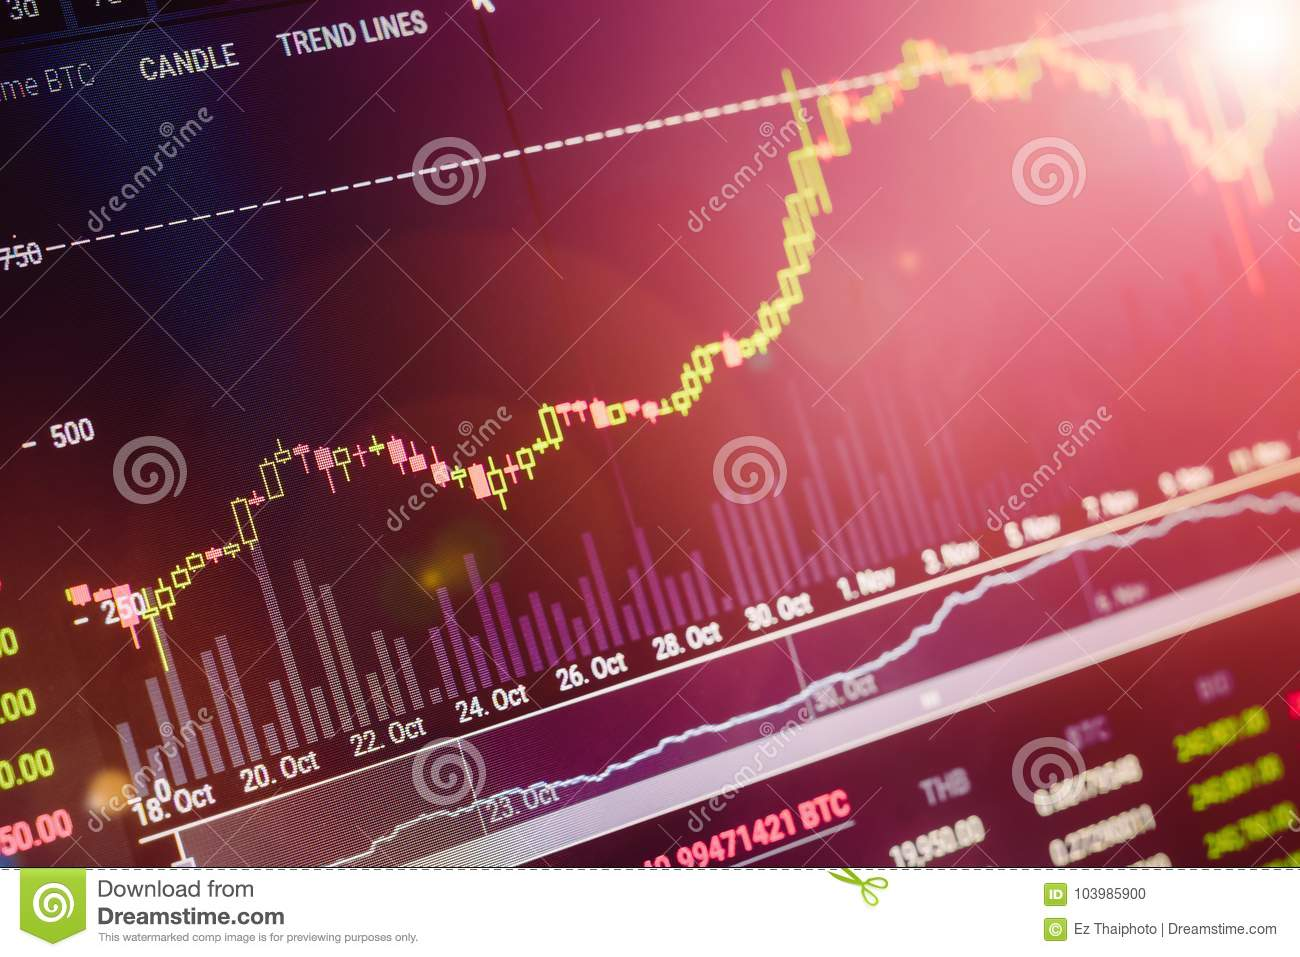 Data analyzing in exchange stock market: the candle chars on dis